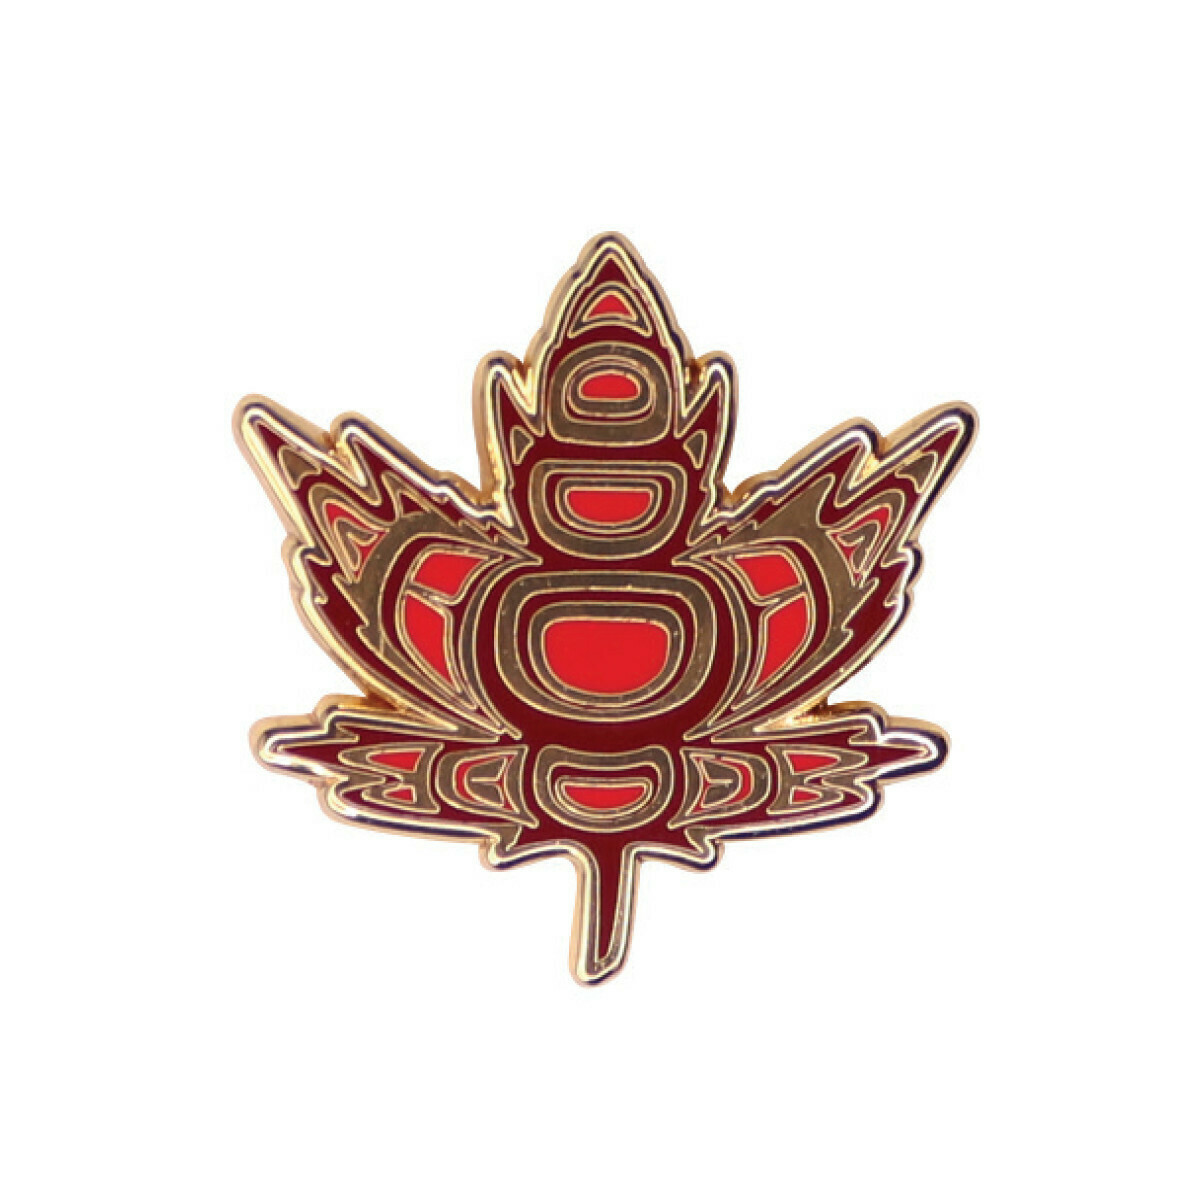 Enamel Pin - Indigenous Maple